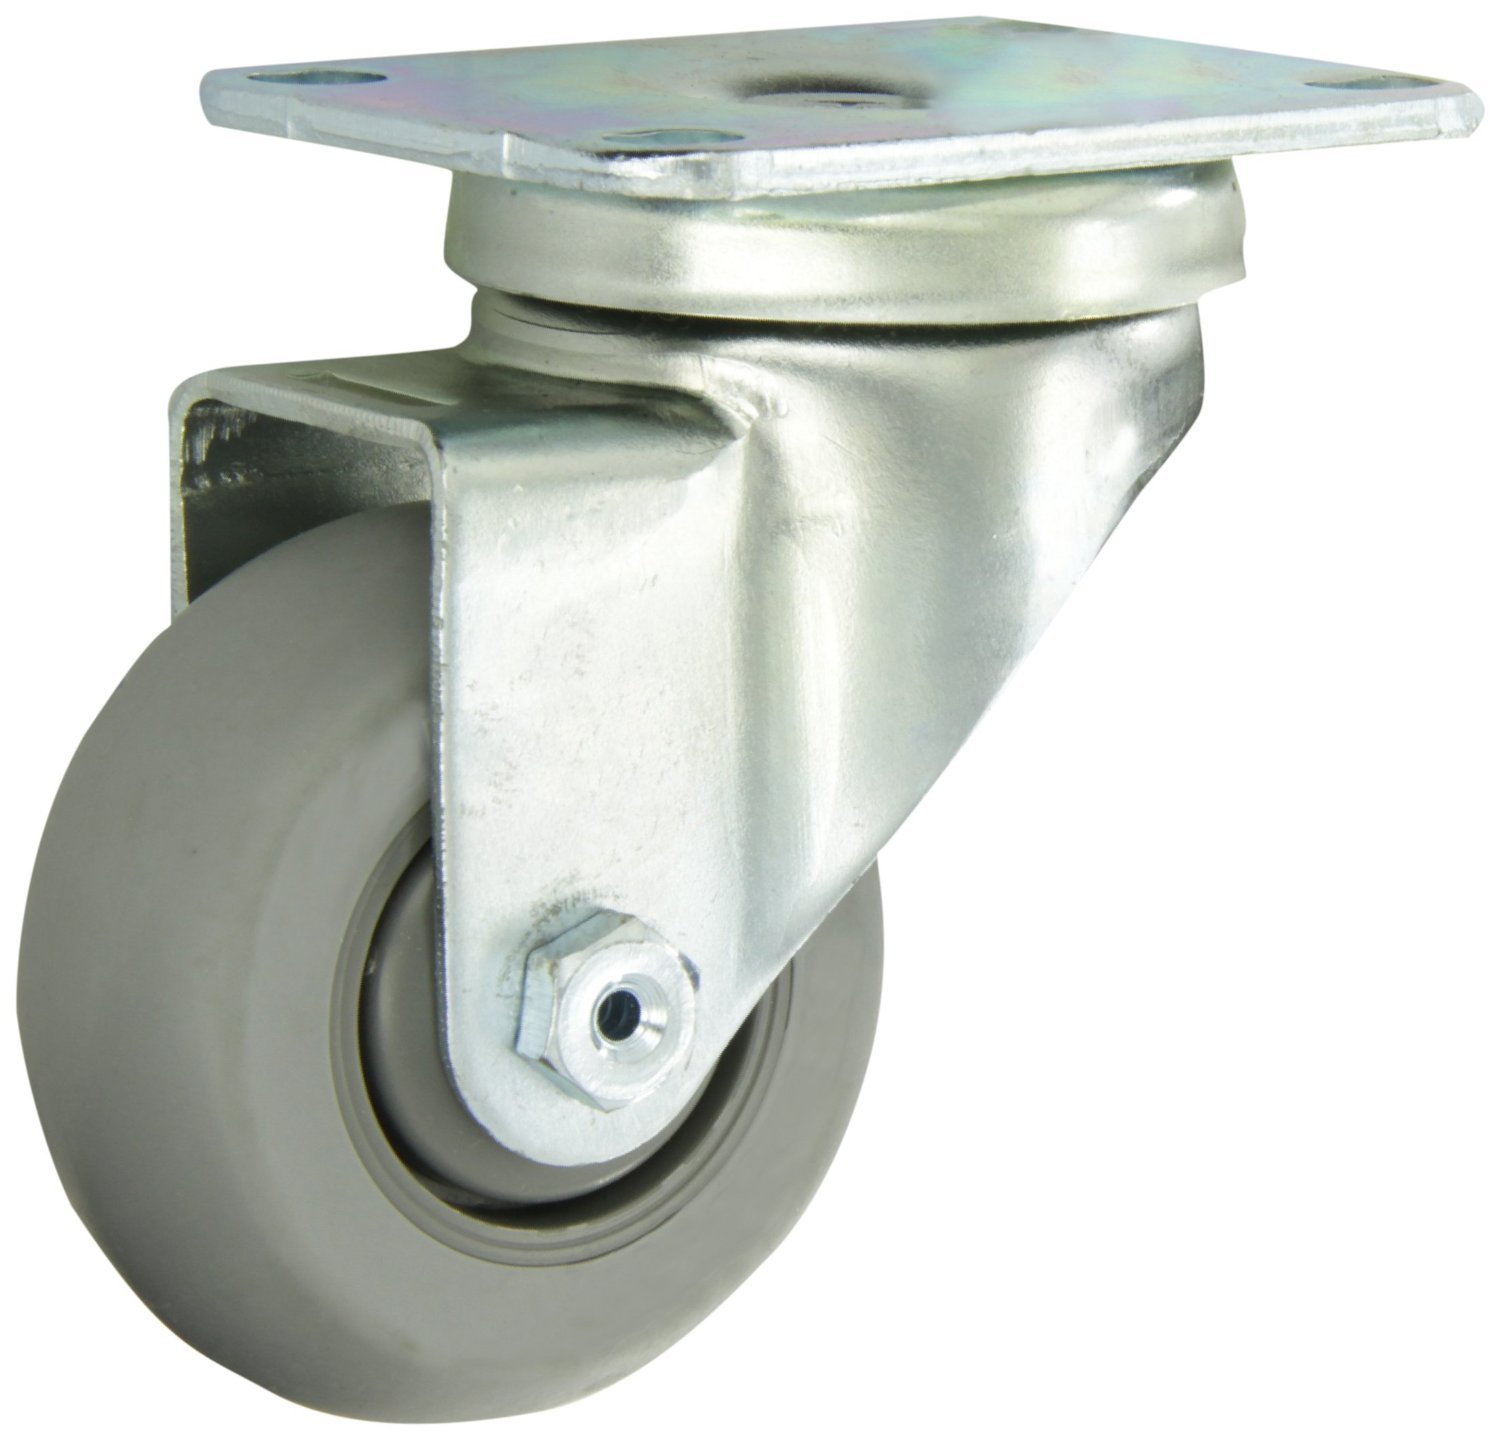 Albion 04XR03028S 3'' Diameter X-tra Soft Rubber Wheel Light Duty Stainless Steel Swivel Plate Caster, Round Tread, Precision Ball Bearing, 3-5/8'' Length x 2-1/2'' Width Base Plate, 200 lb. Capacity by Albion